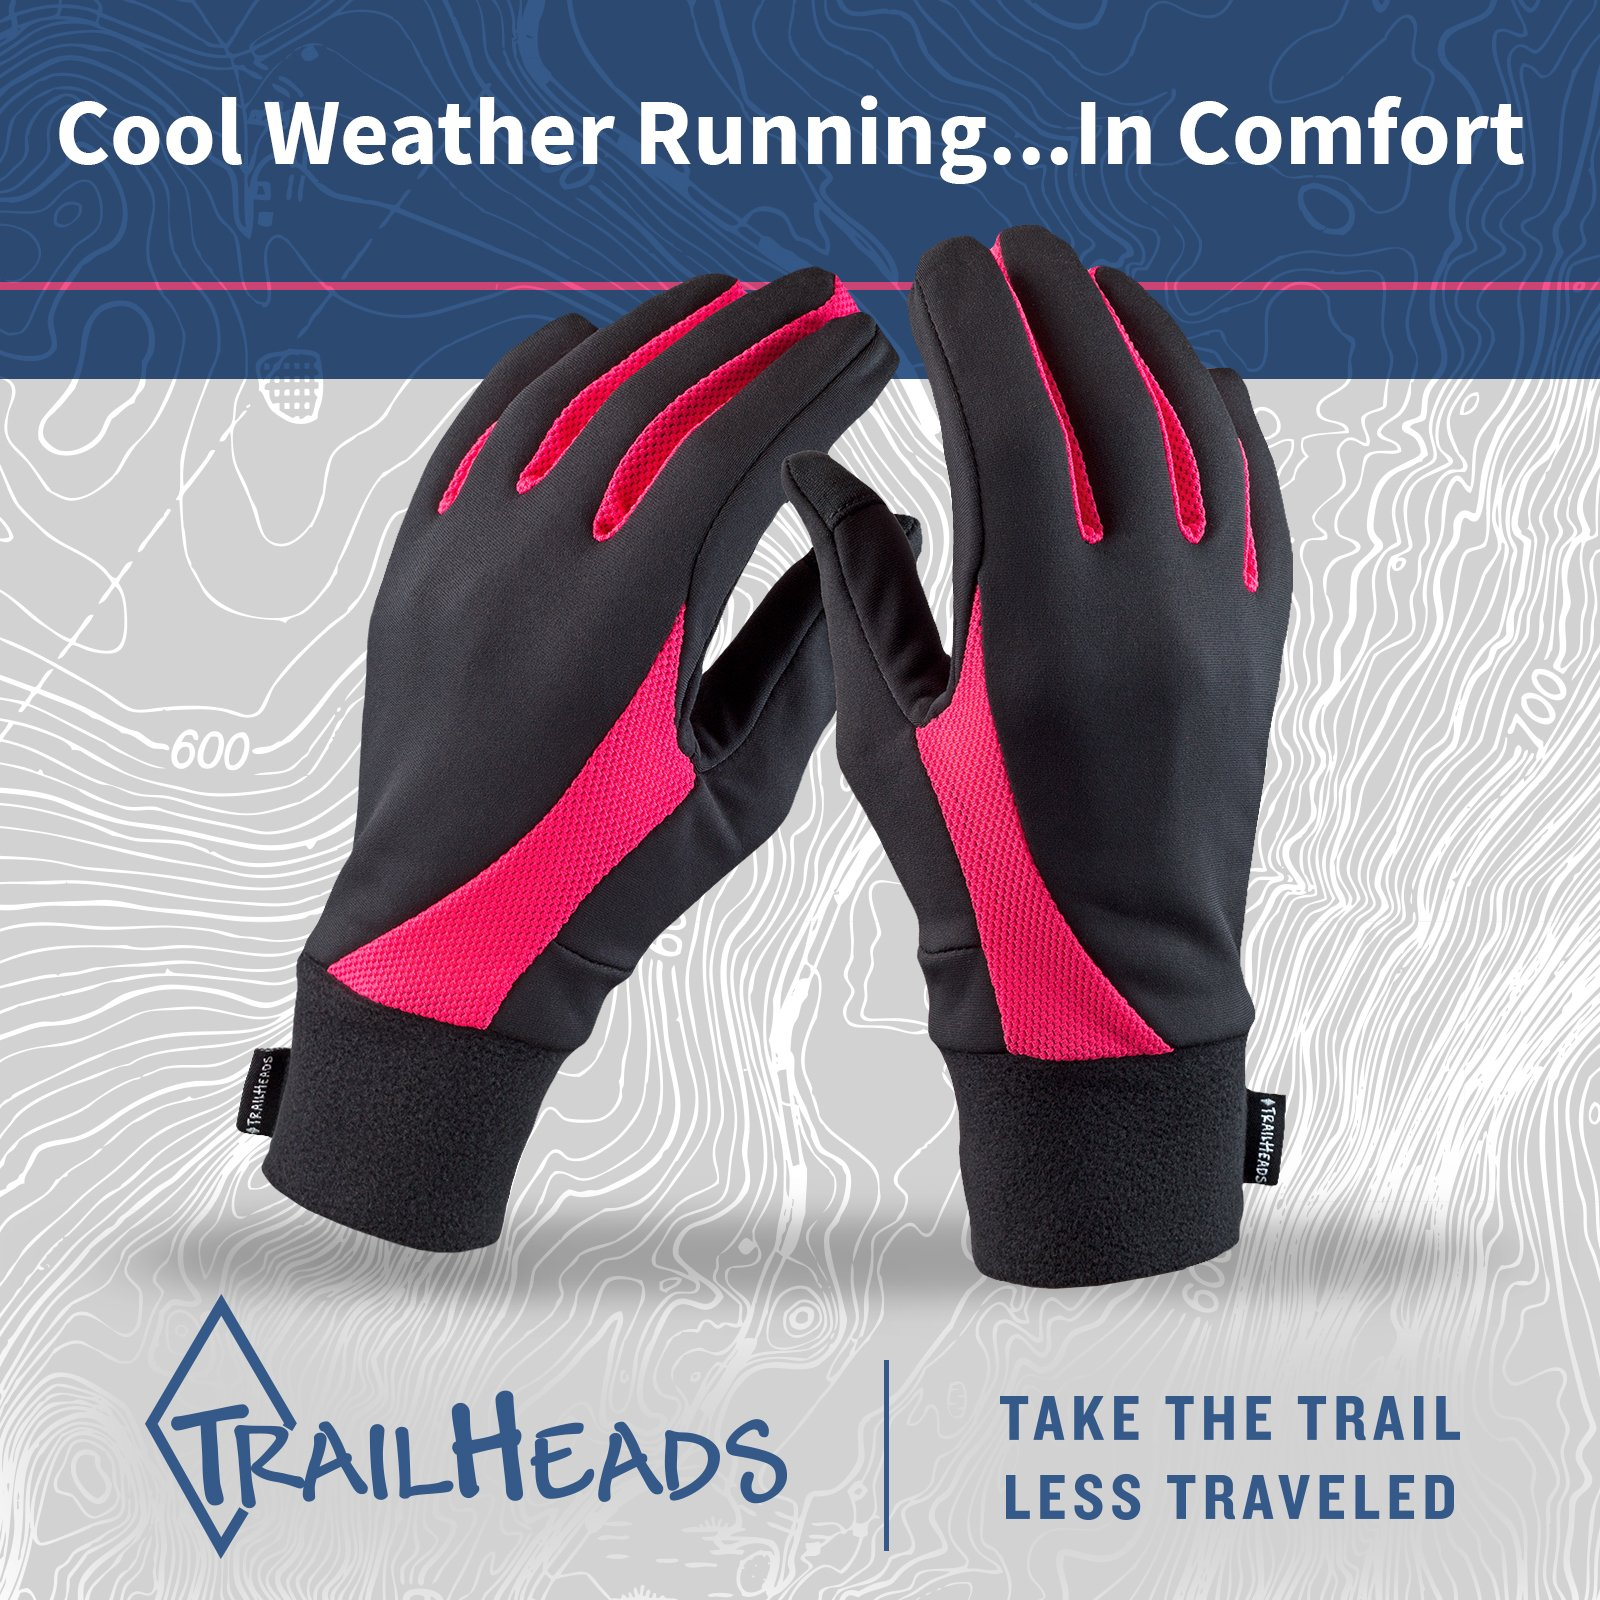 TrailHeads Running Gloves   Lightweight Gloves with Touchscreen Fingers -Black/Bright Coral (Large) by TrailHeads (Image #5)